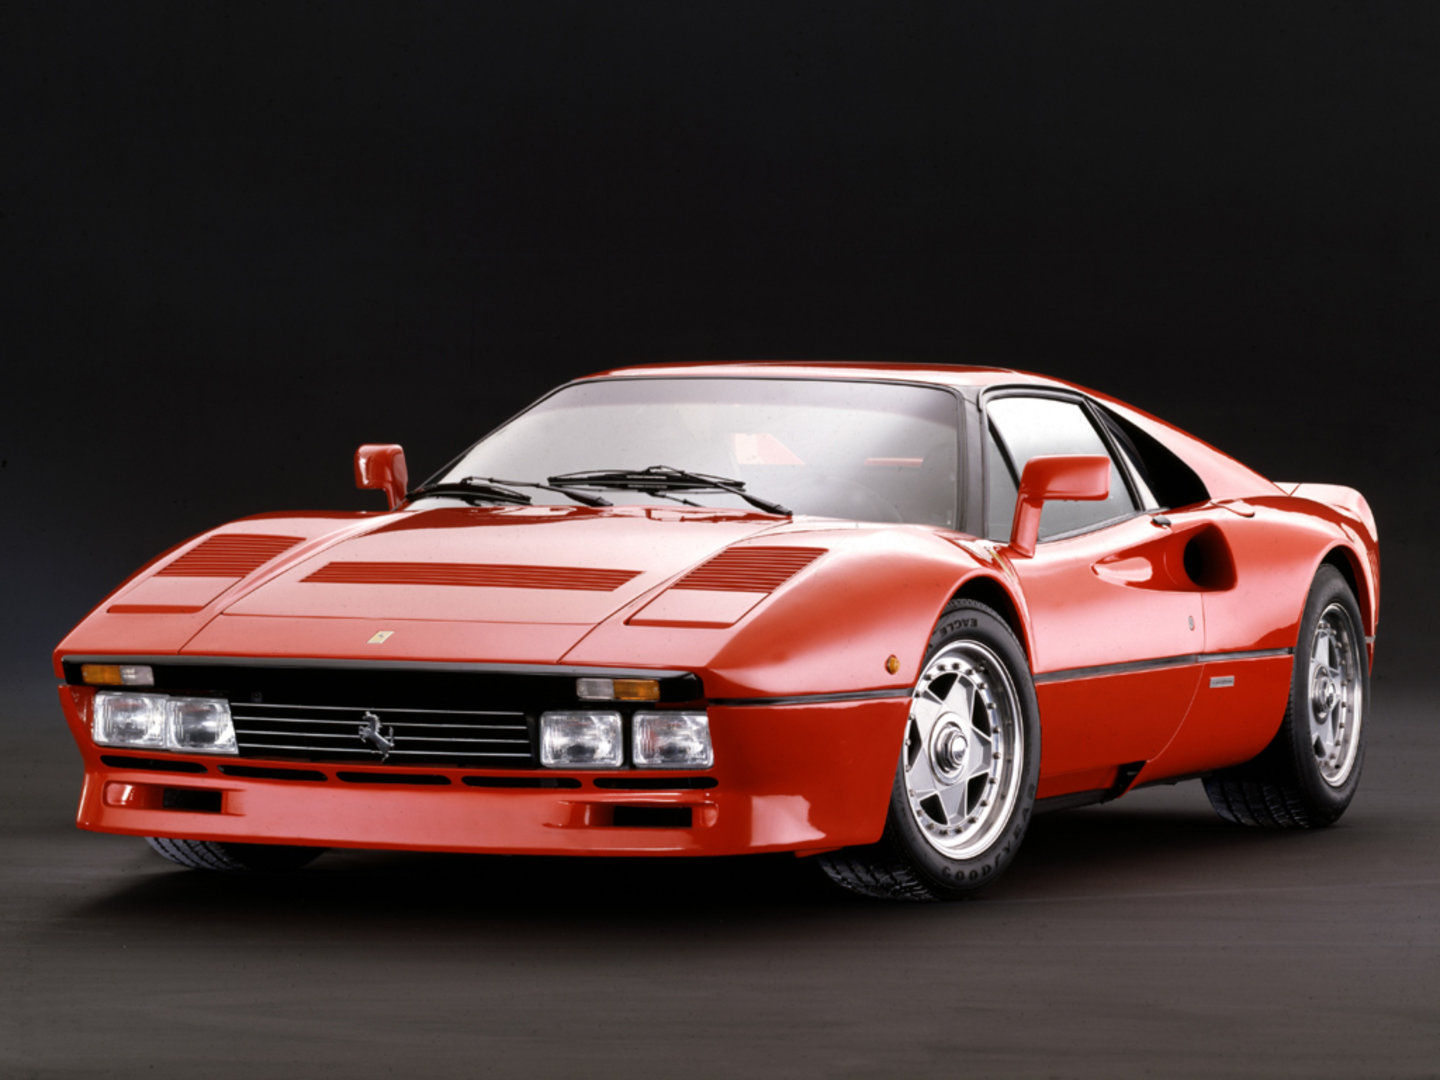 Celebrate Enzo Ferrari Day with our favorite Ferraris of all time thumbnail